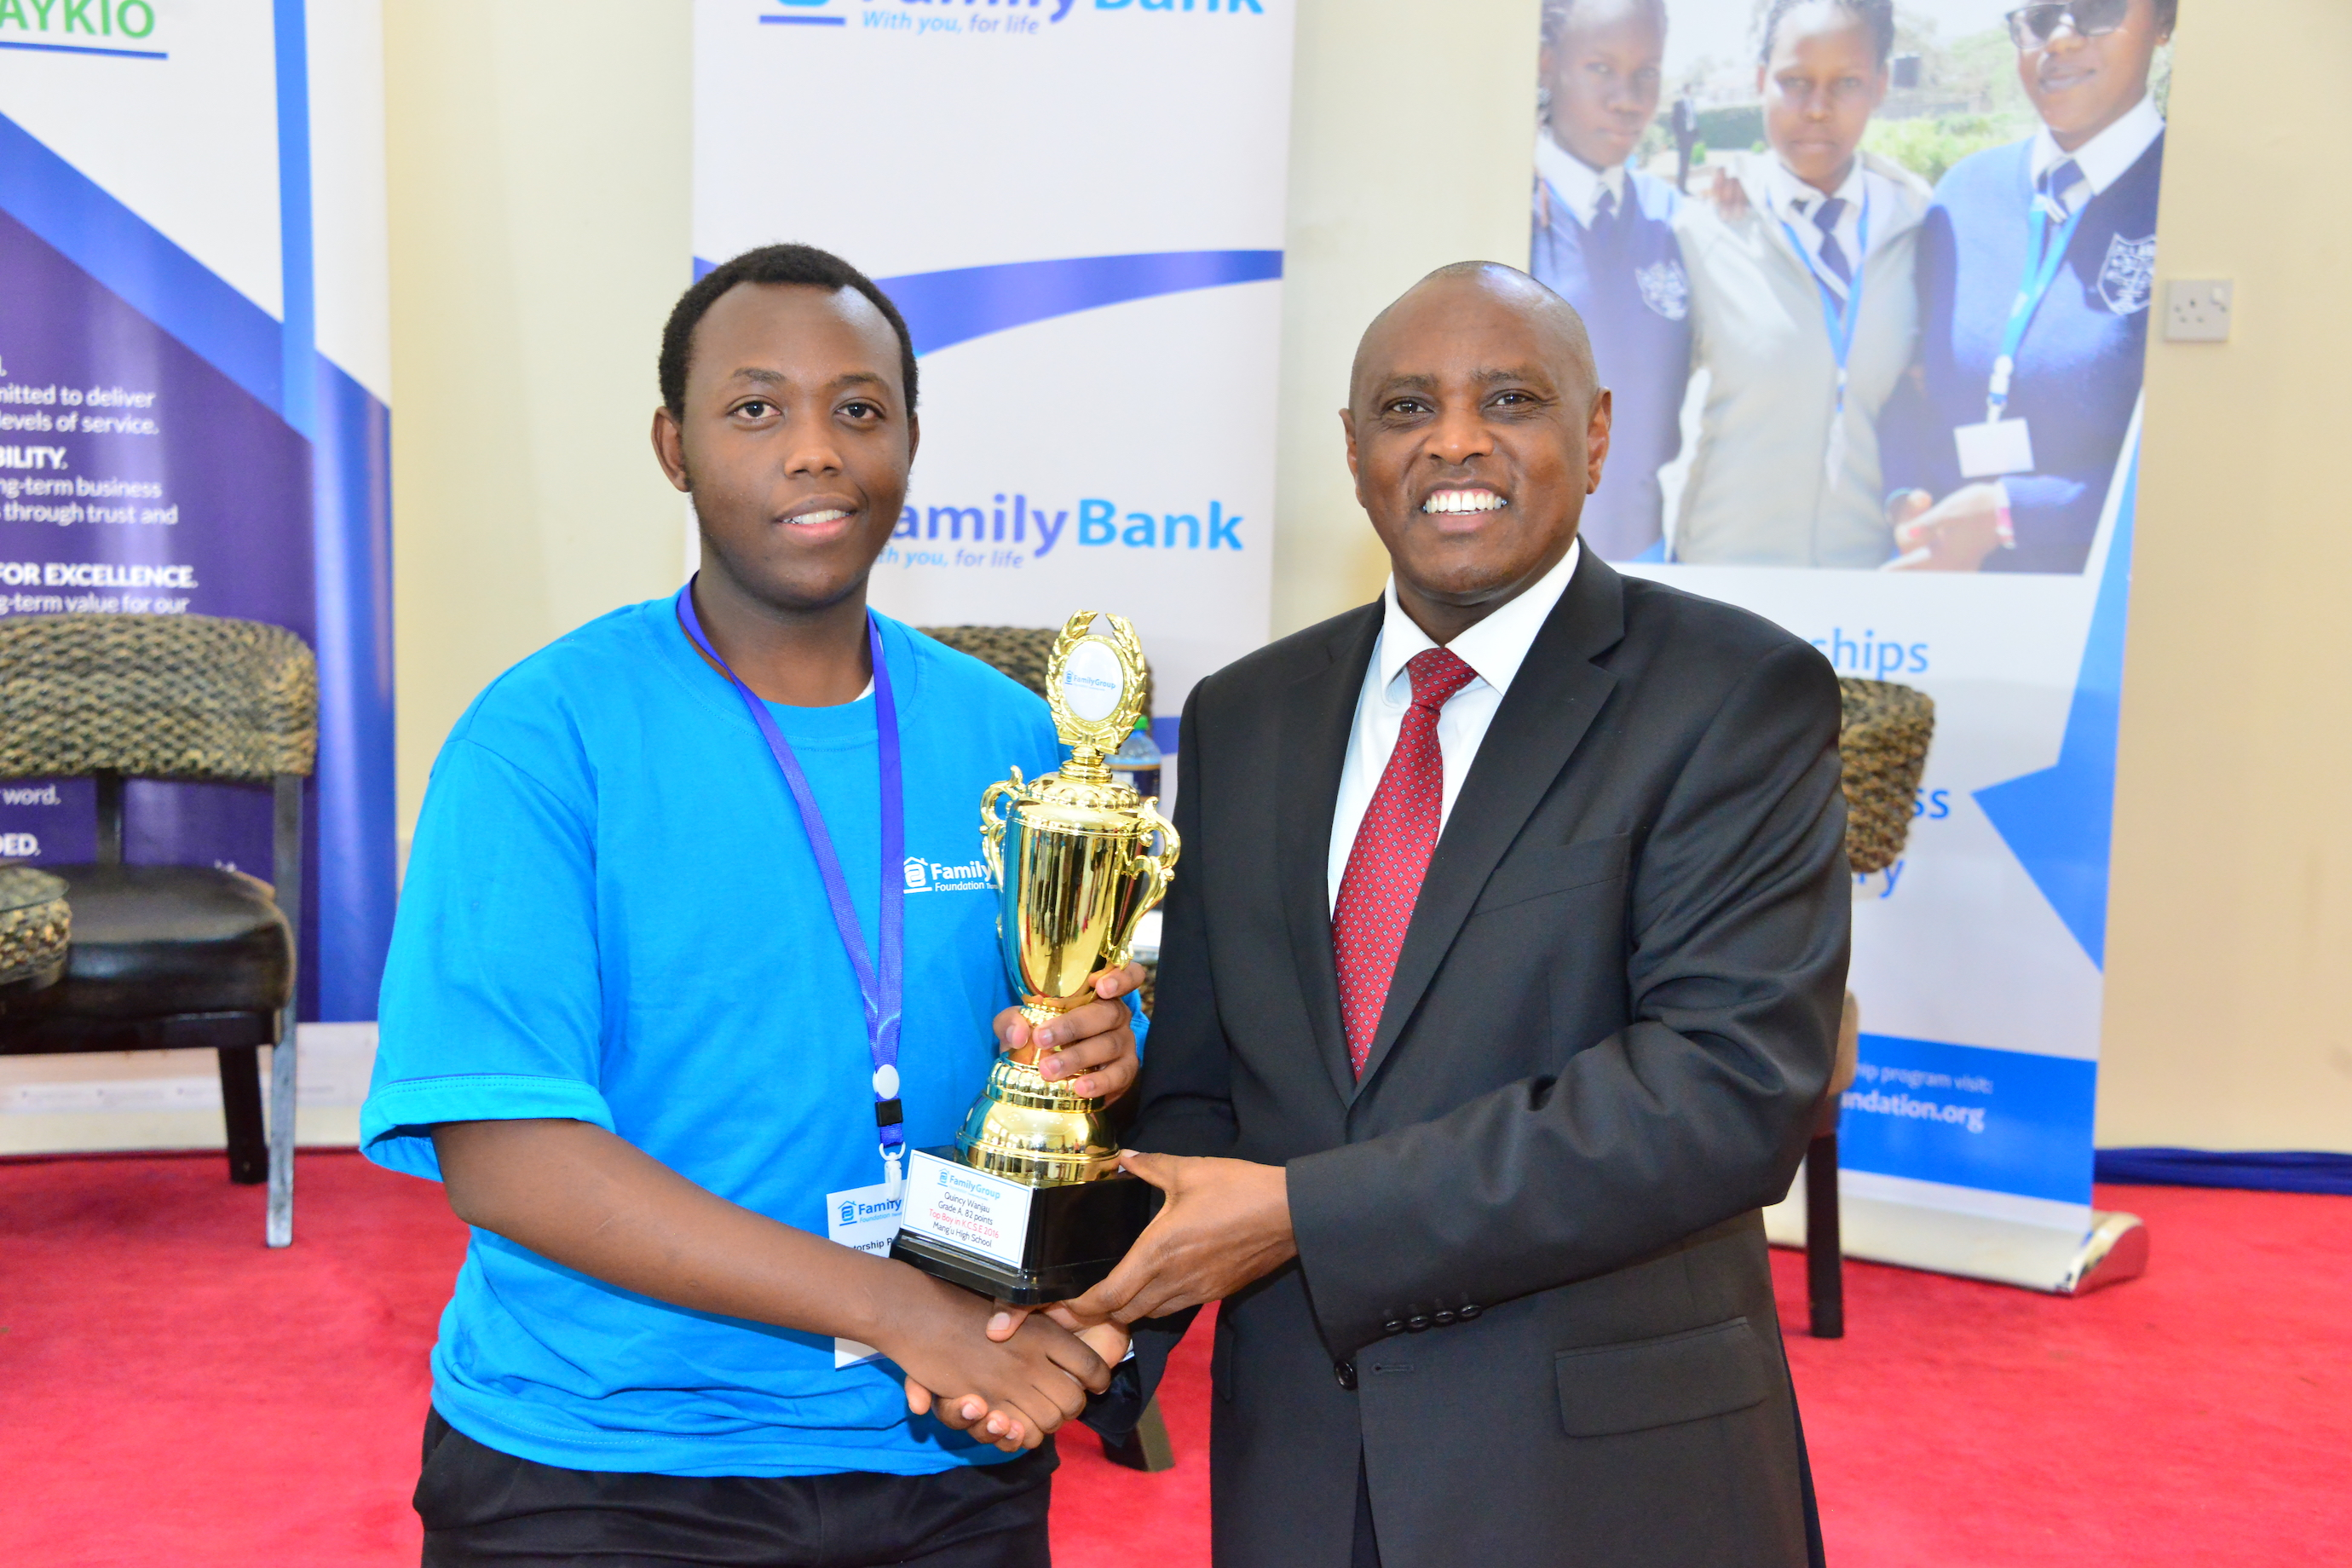 Family Group Foundation invests over shillings 80 million in education